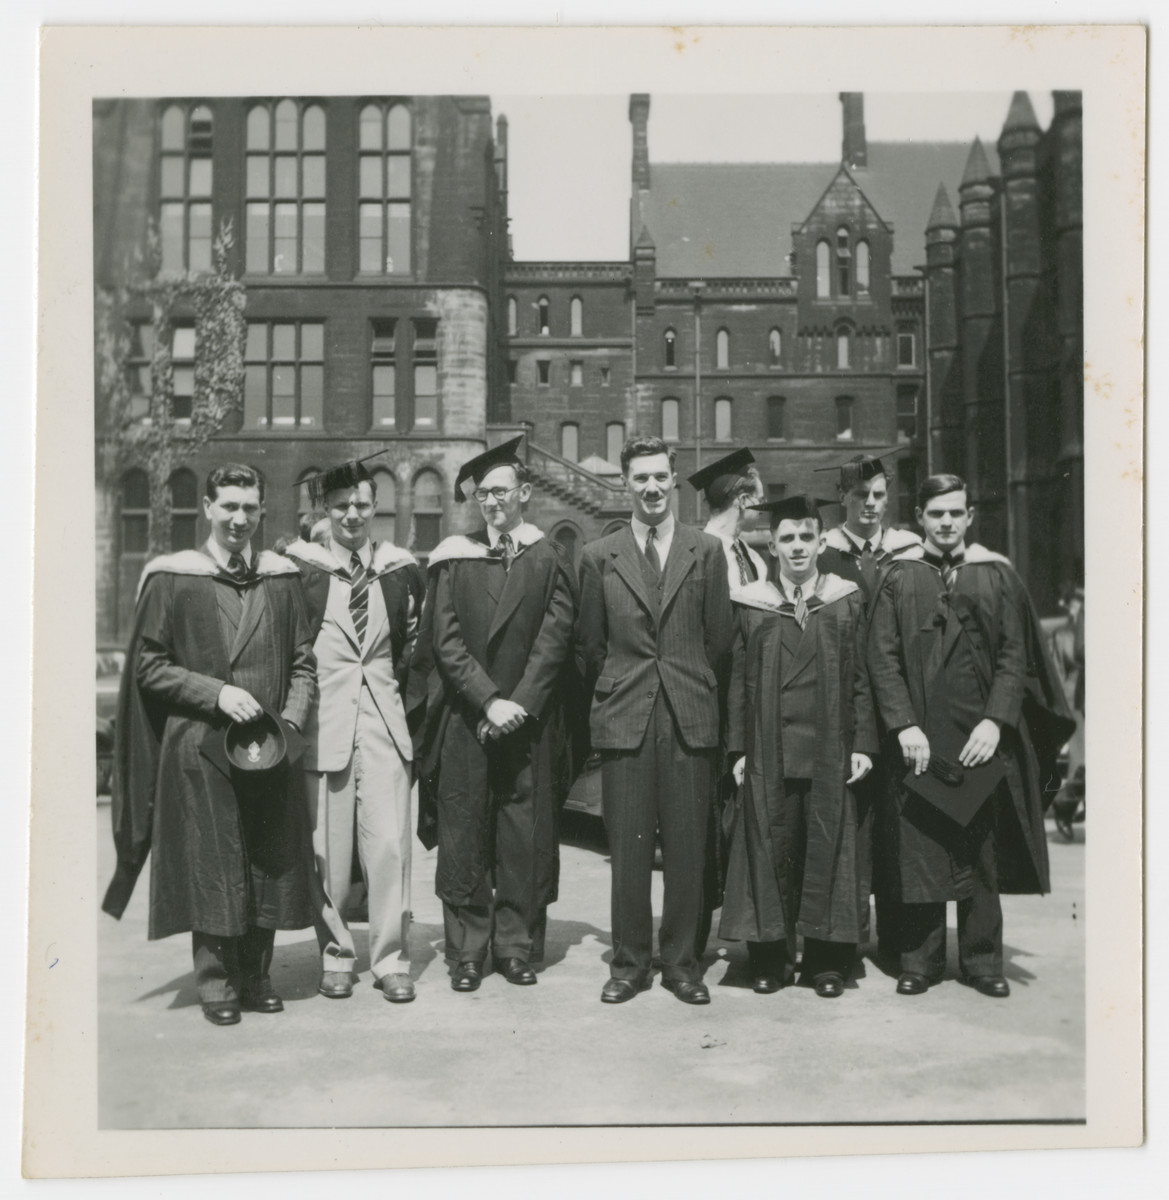 Manfred Gans (second from the left) graduates from the College of Technology in Manchester.